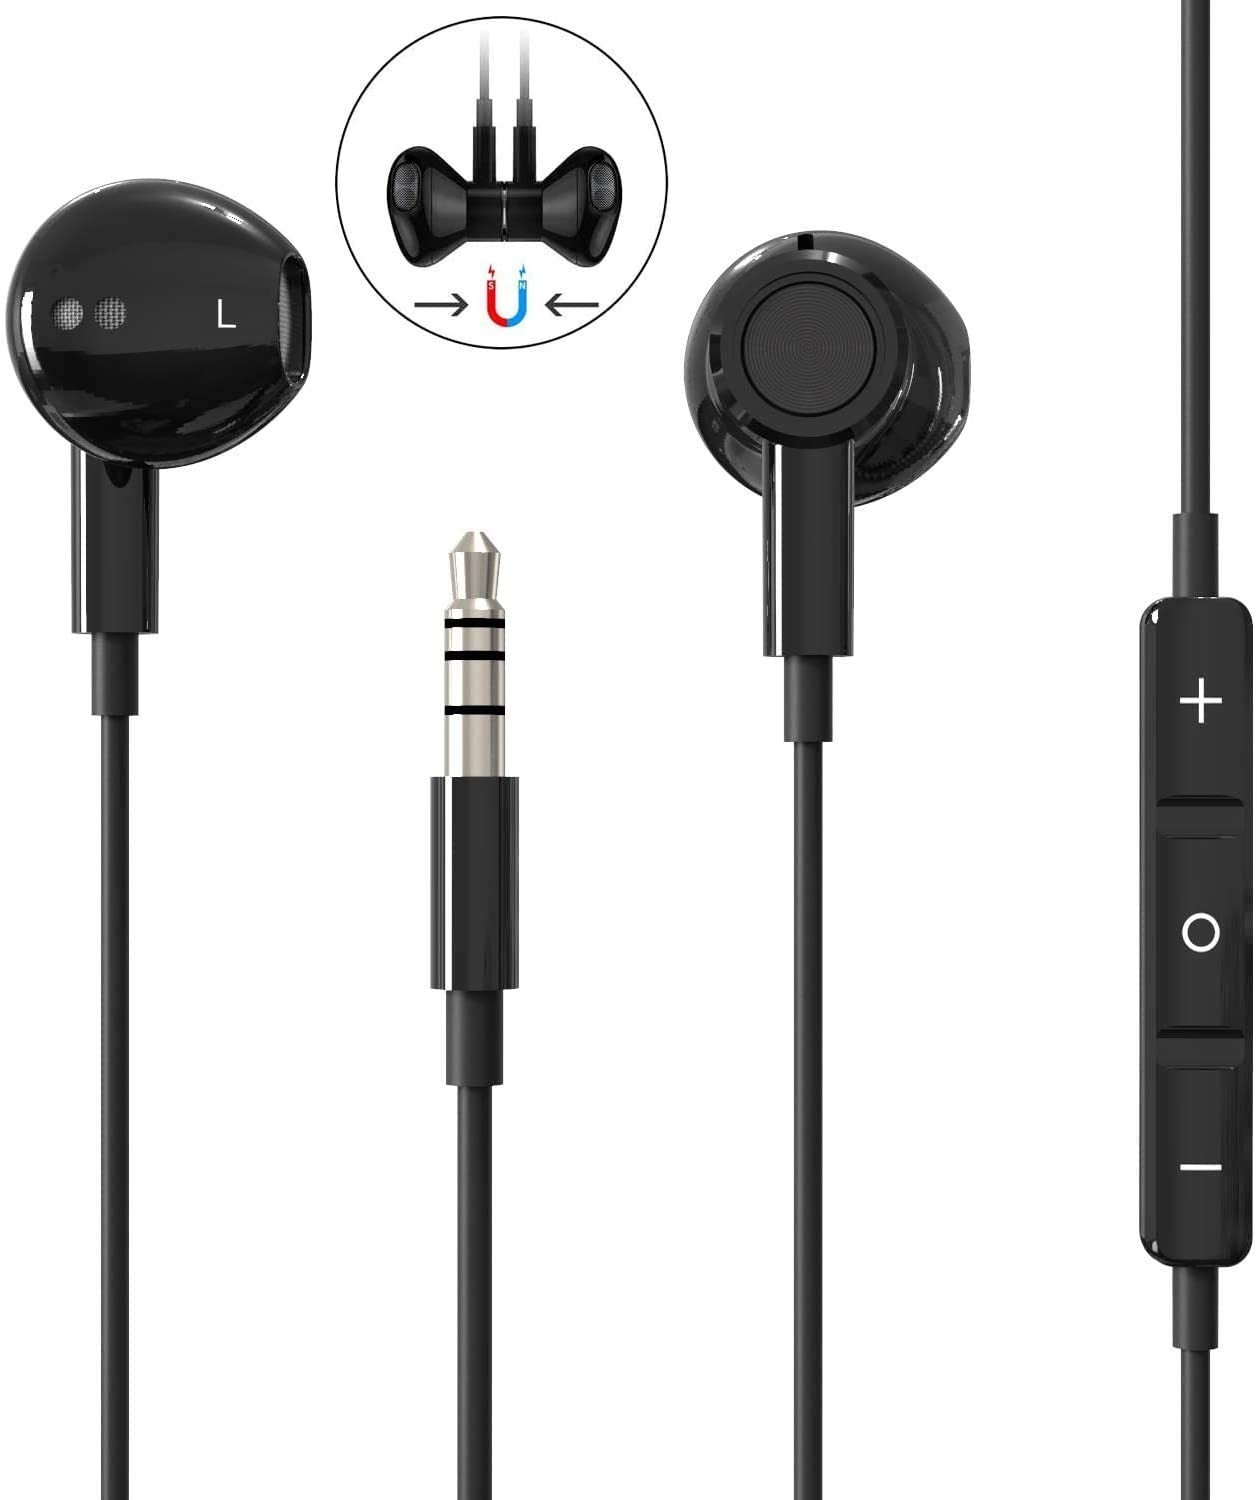 Aux Headphones,3.5mm Earphones Magnetic in-Ear Stereo Earbuds, with Microphone Noise Isolating Compatible with iPhone 6s/ 6 Plus/SE Pad/Pod 7,with All 3.5mm Interface Devices-Black